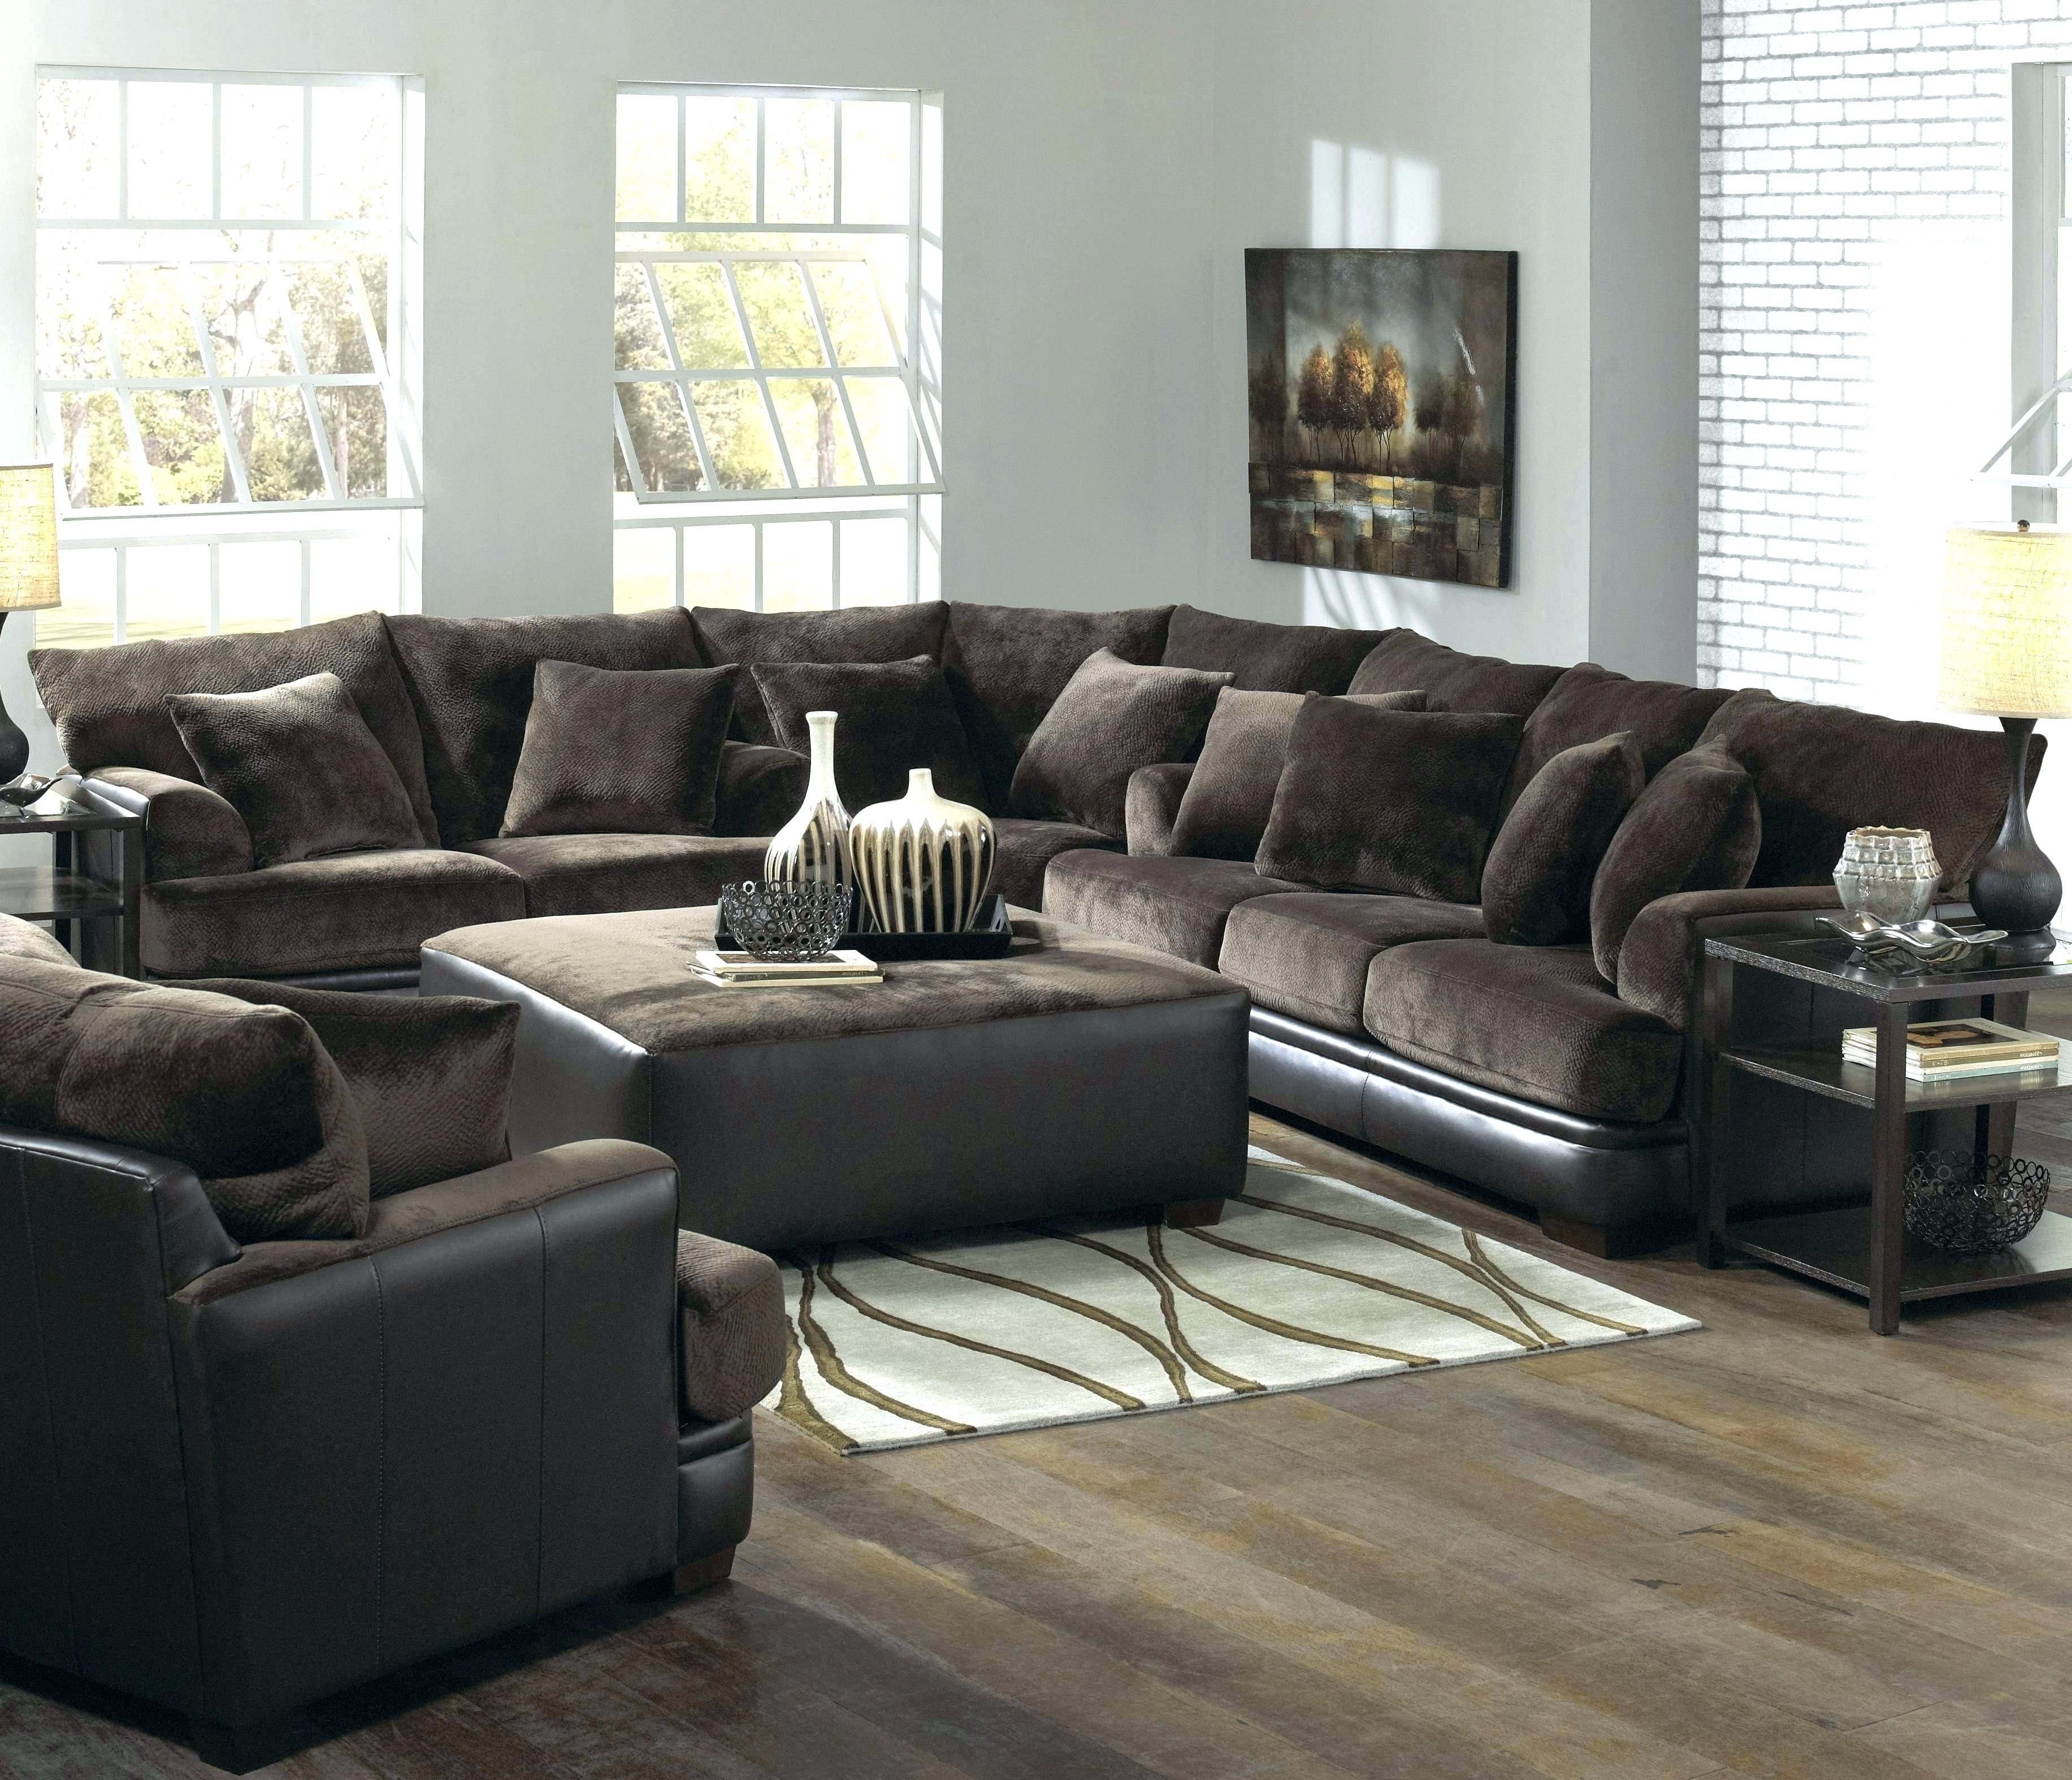 Sectional Sofas For Sale – Stepdesigns Inside Kijiji Calgary Sectional Sofas (View 8 of 10)